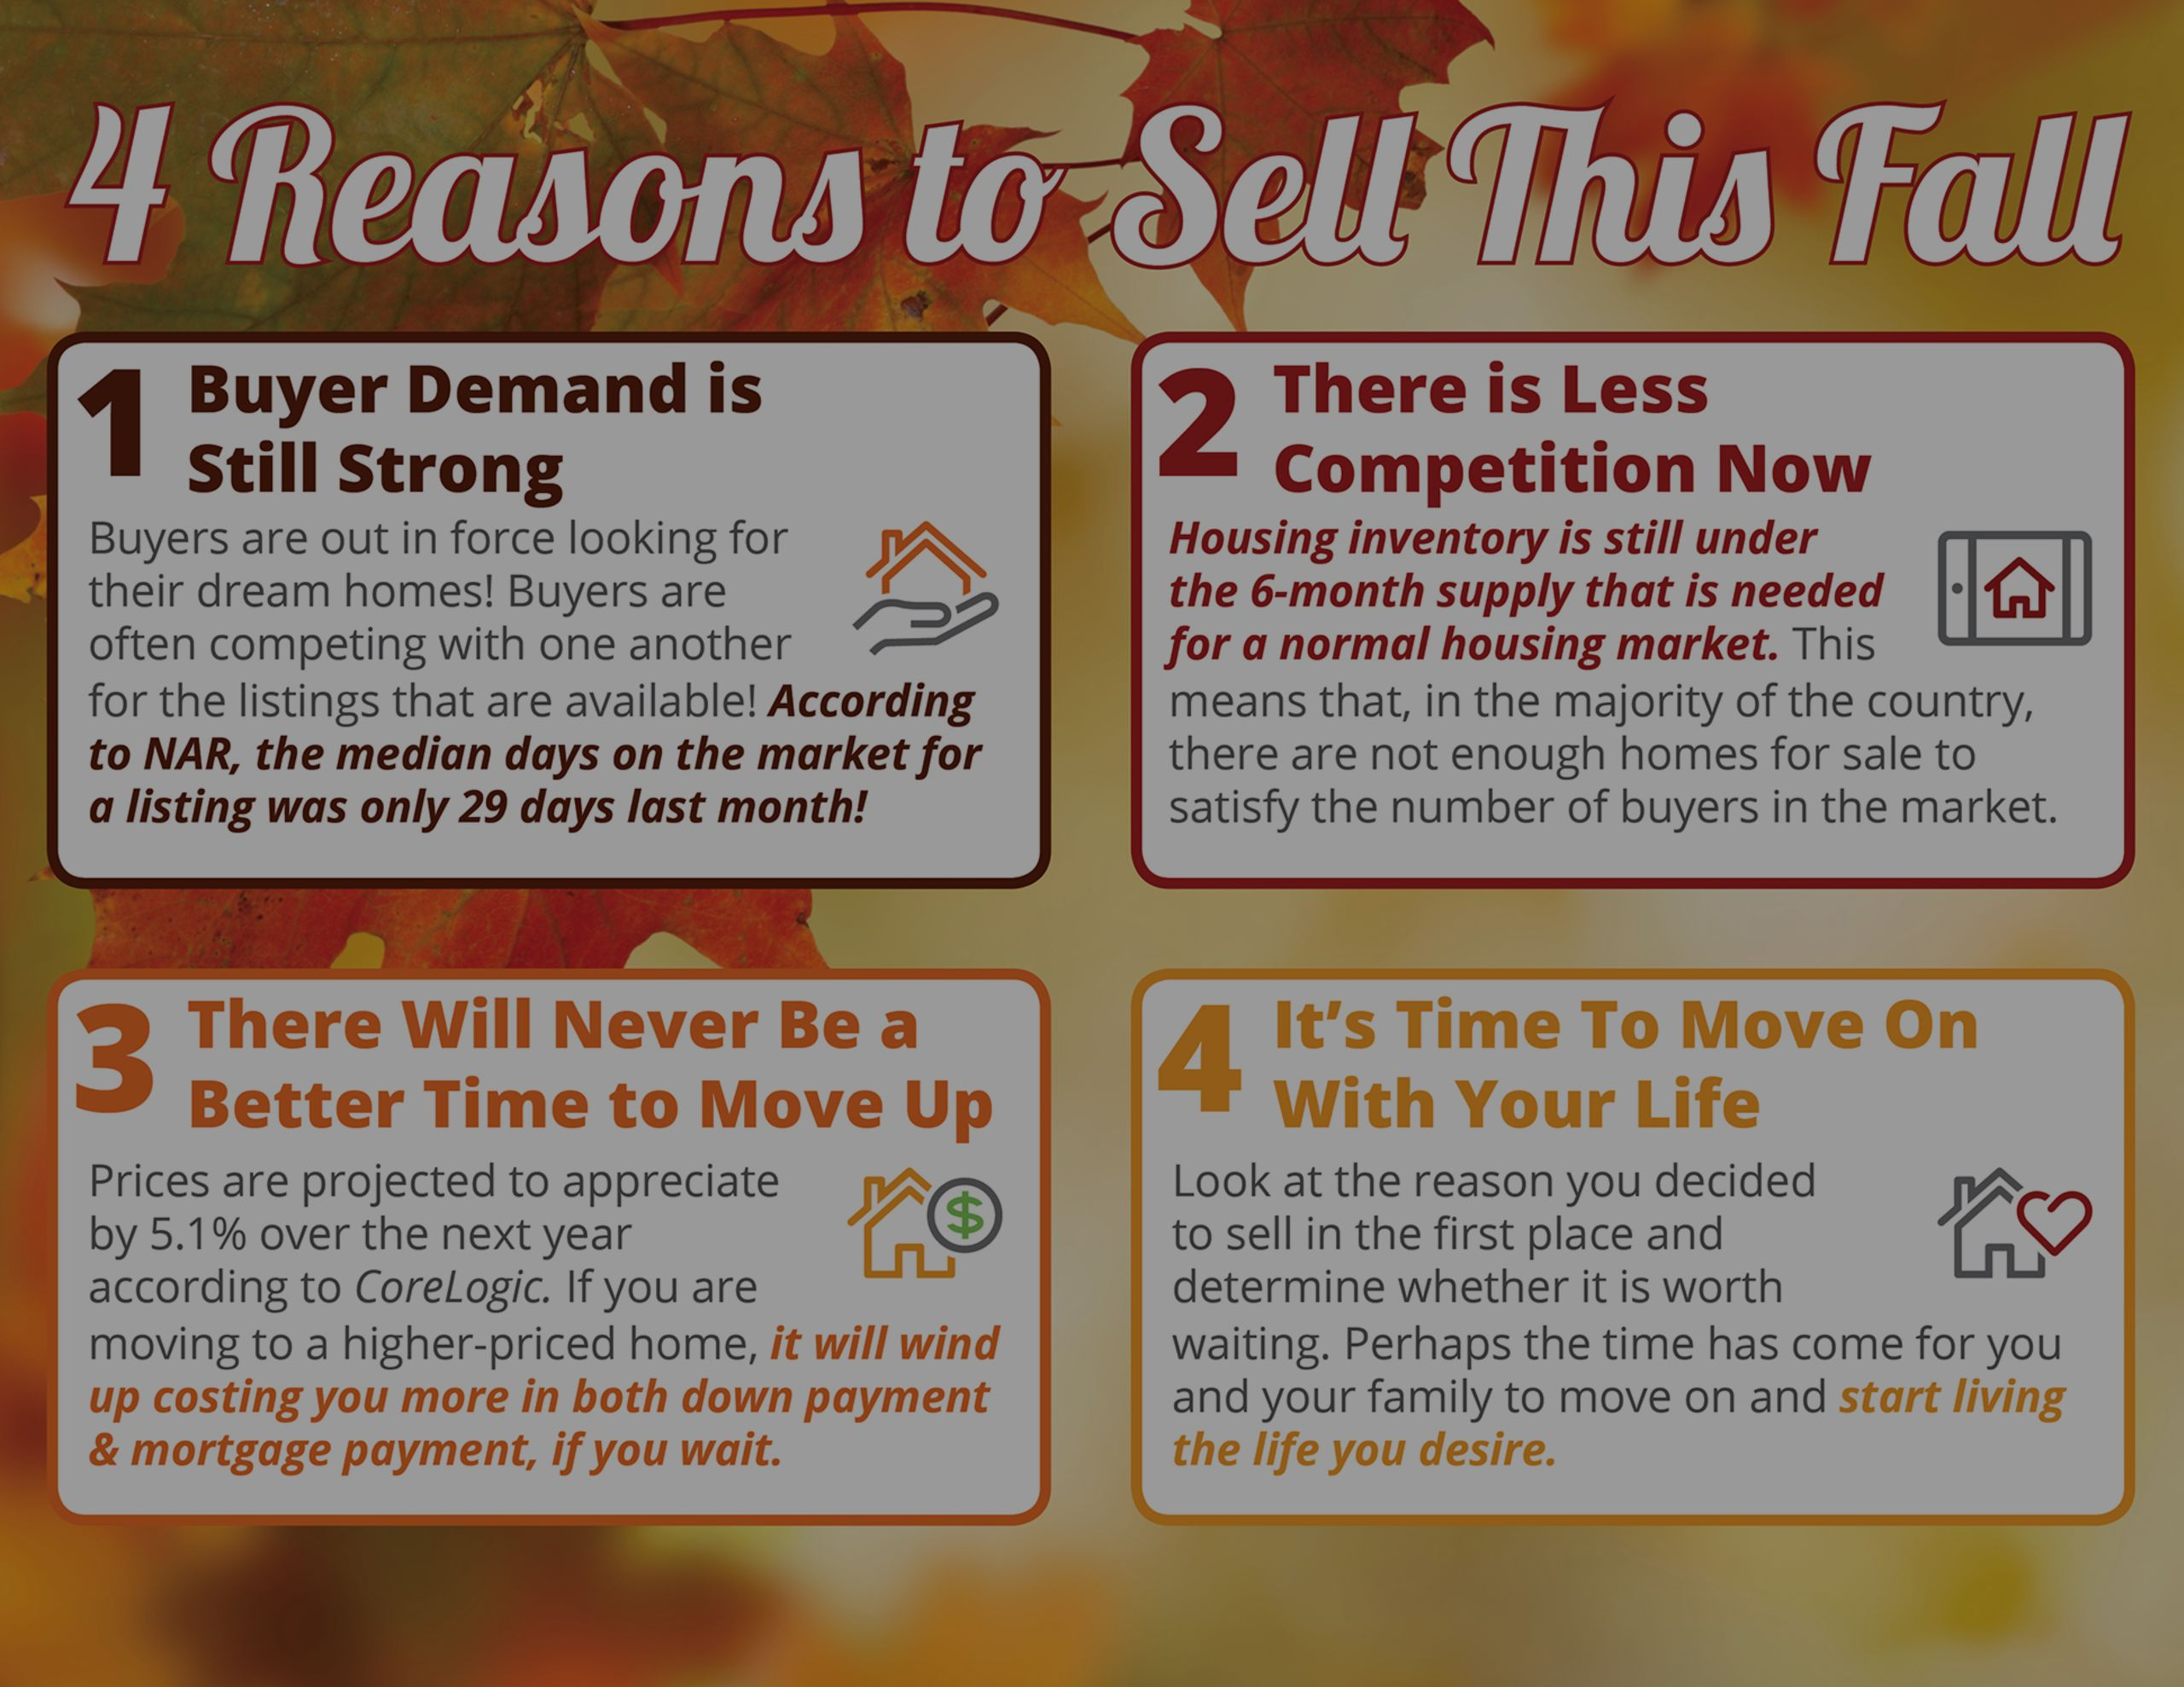 4 Reasons You Should Sell This Fall